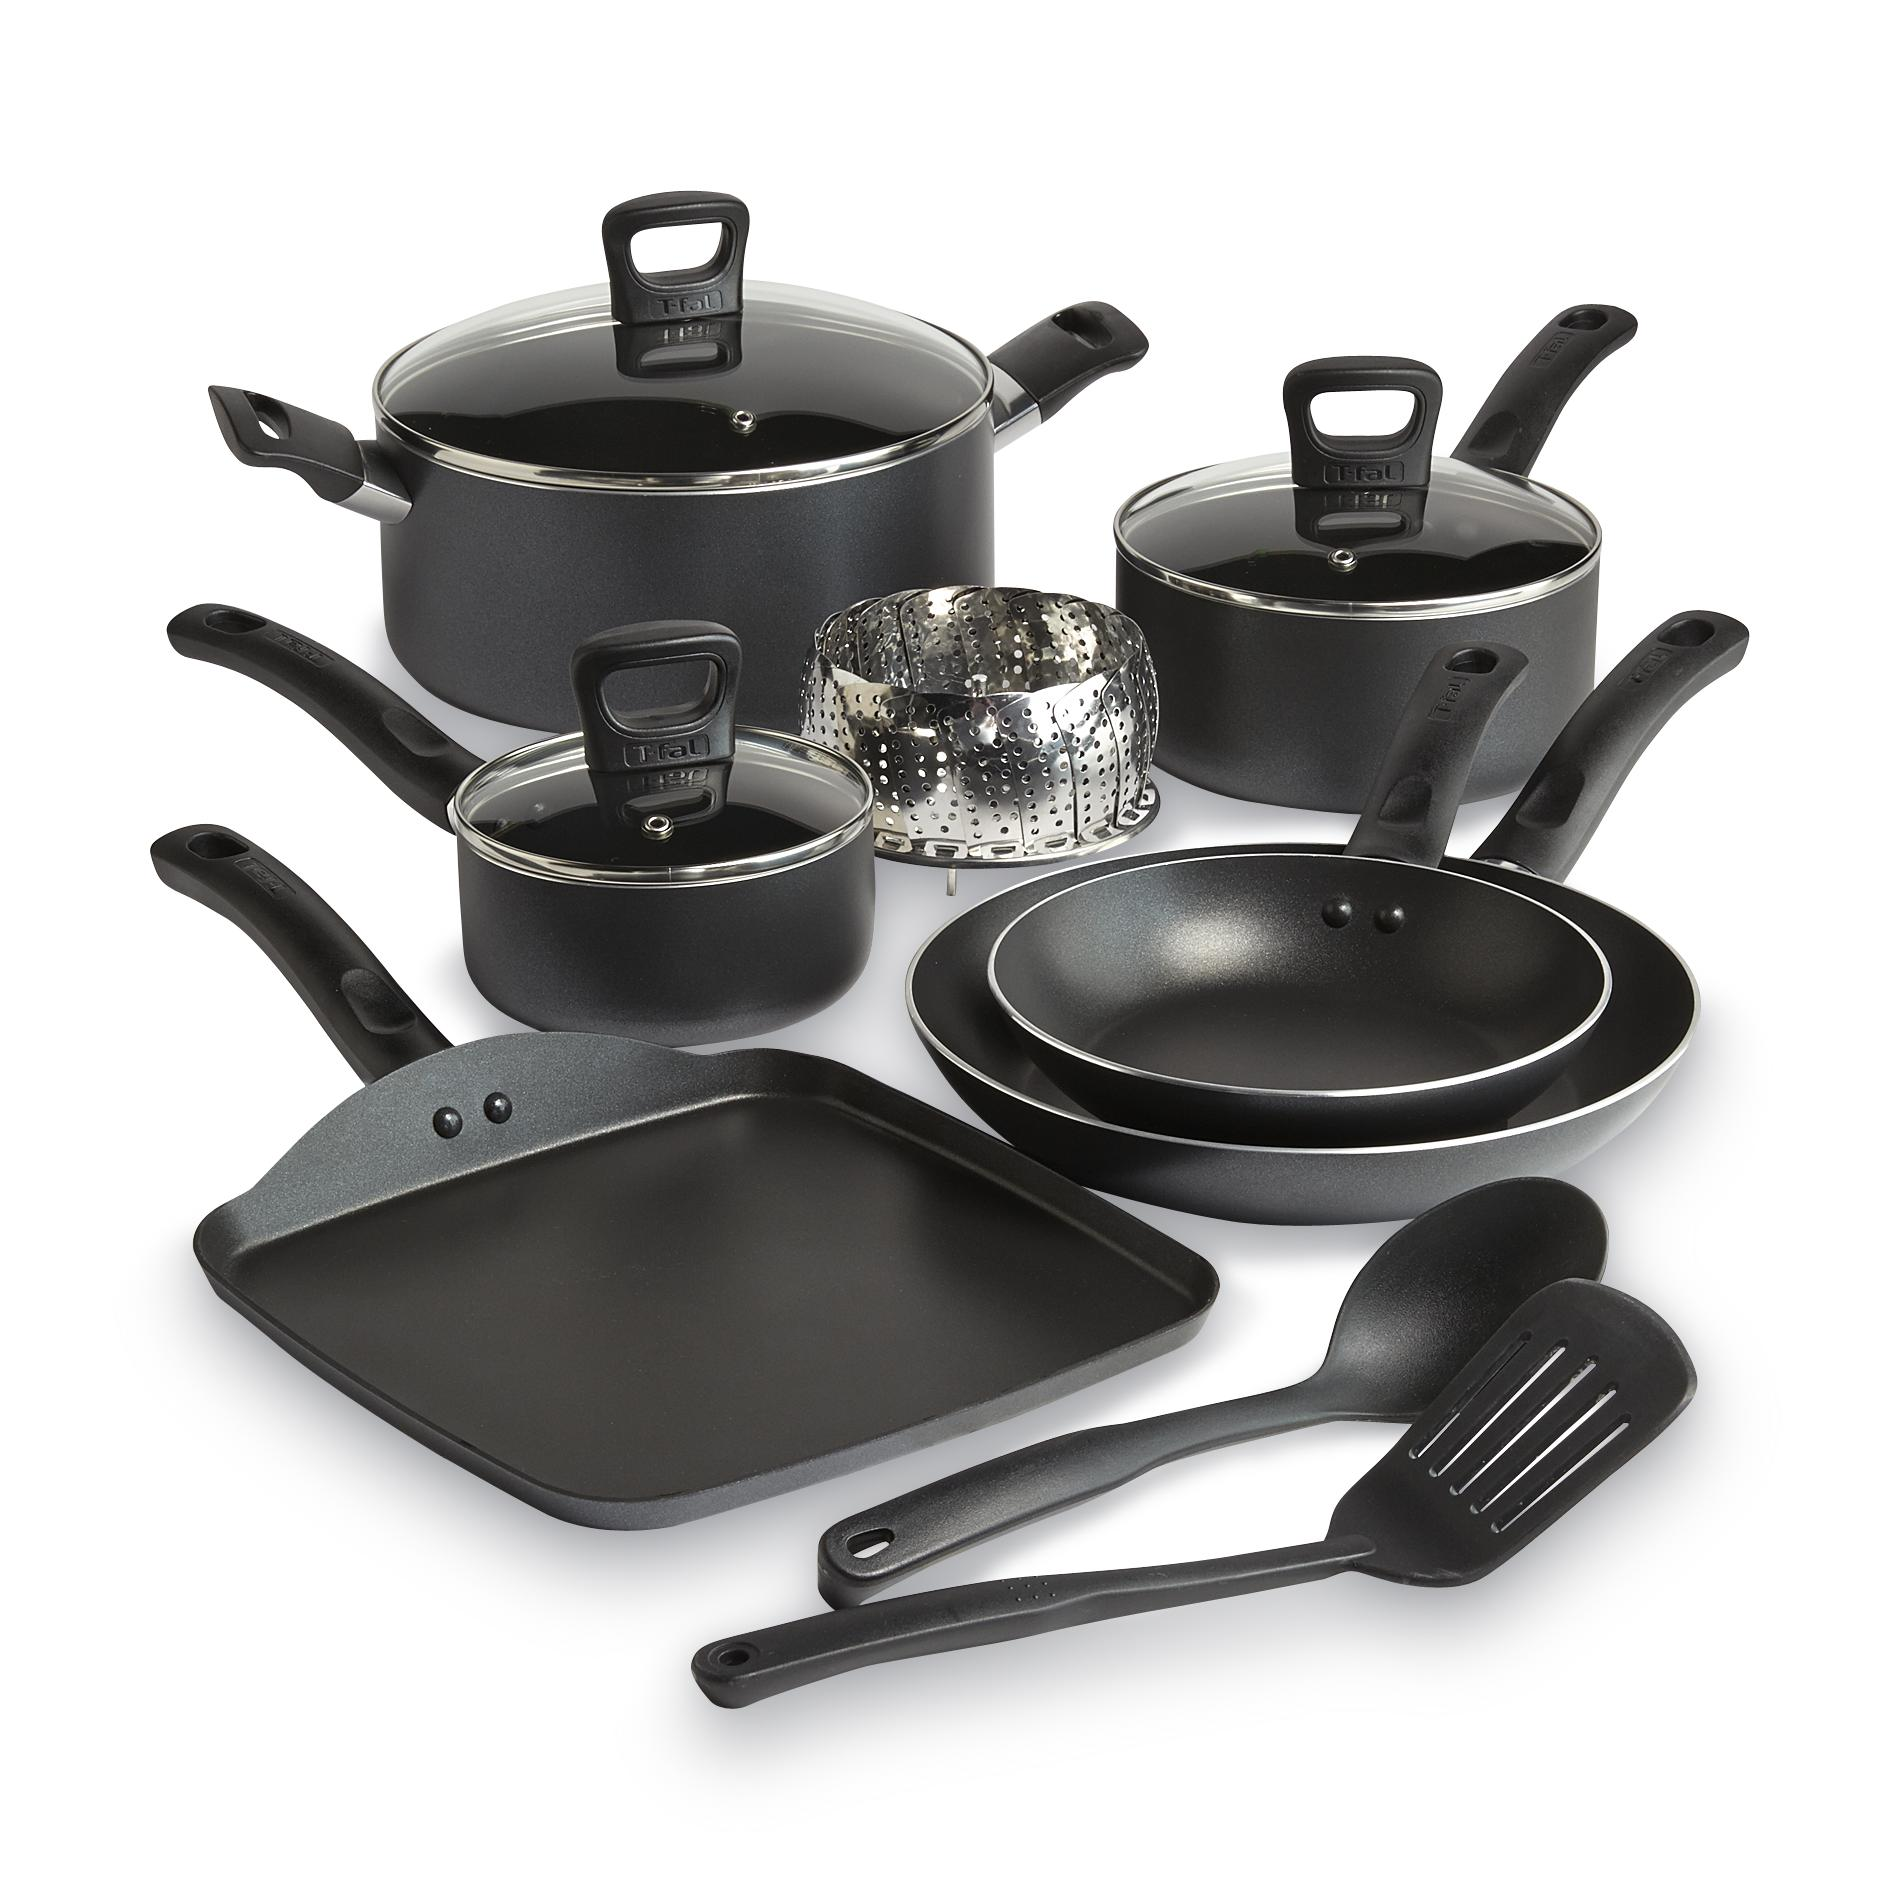 T-fal 12-piece Banquet -stick Gray Cookware Set